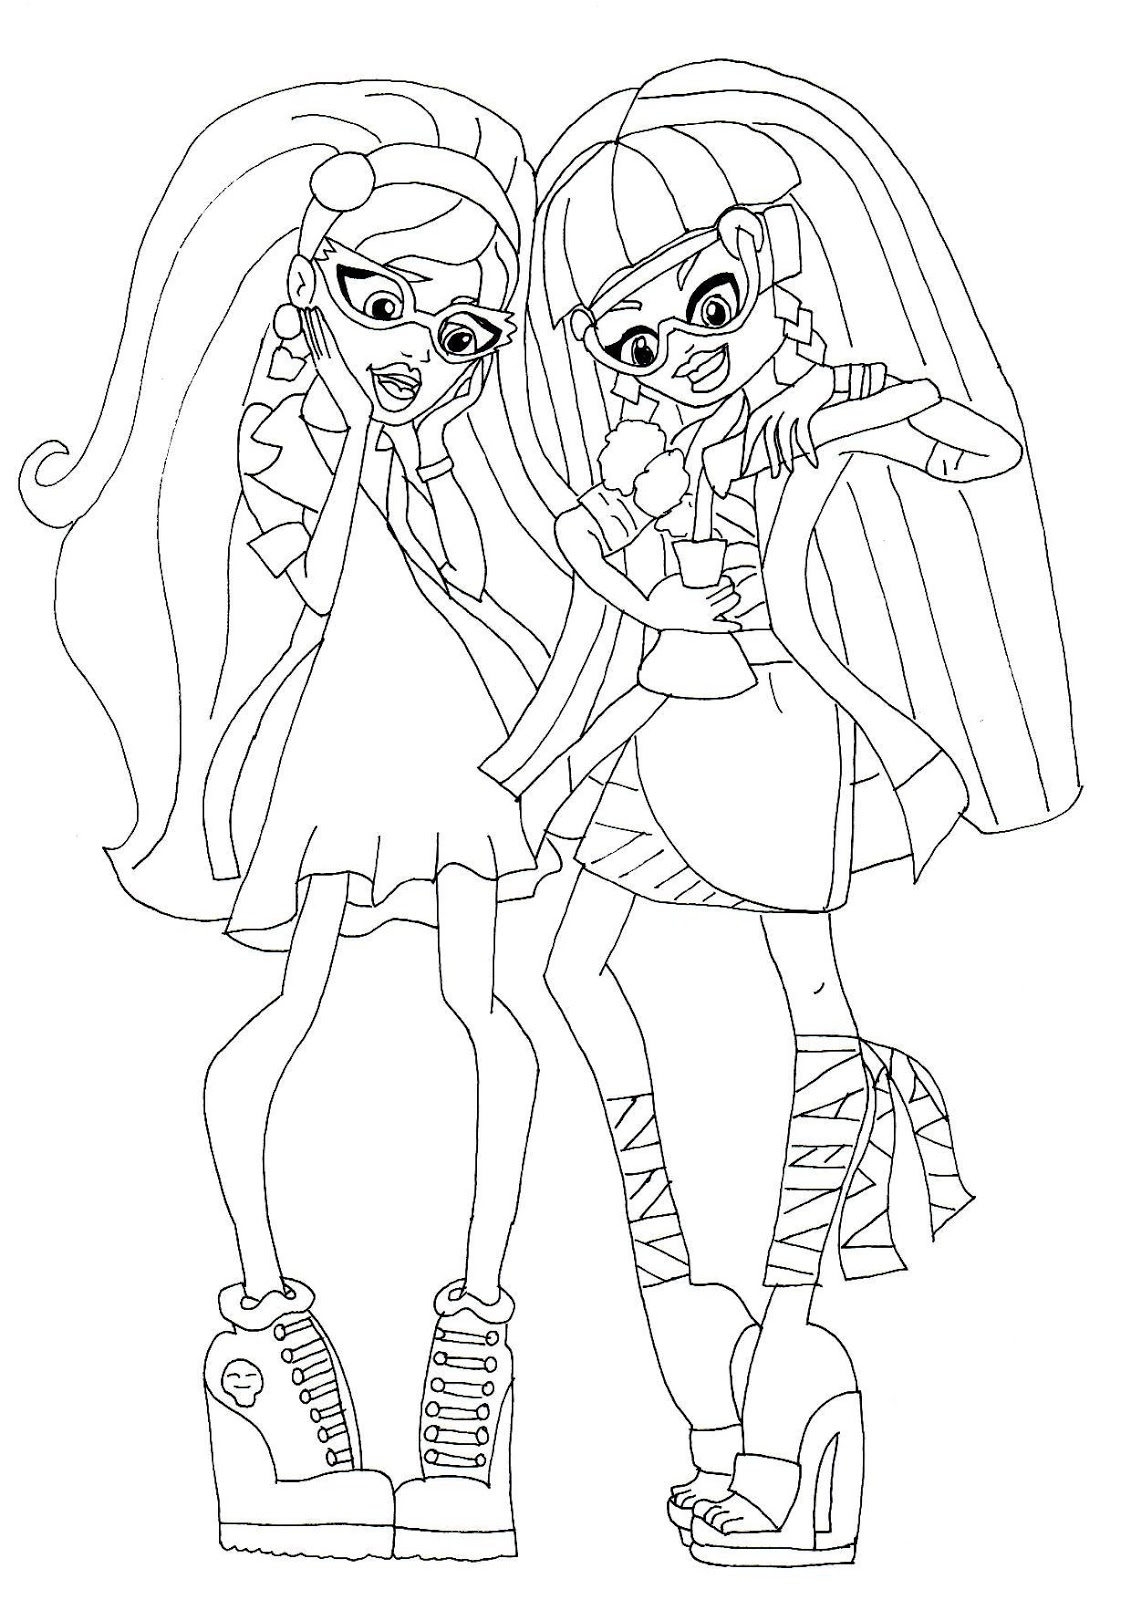 Free Printable Monster High Coloring Pages: Cleo and